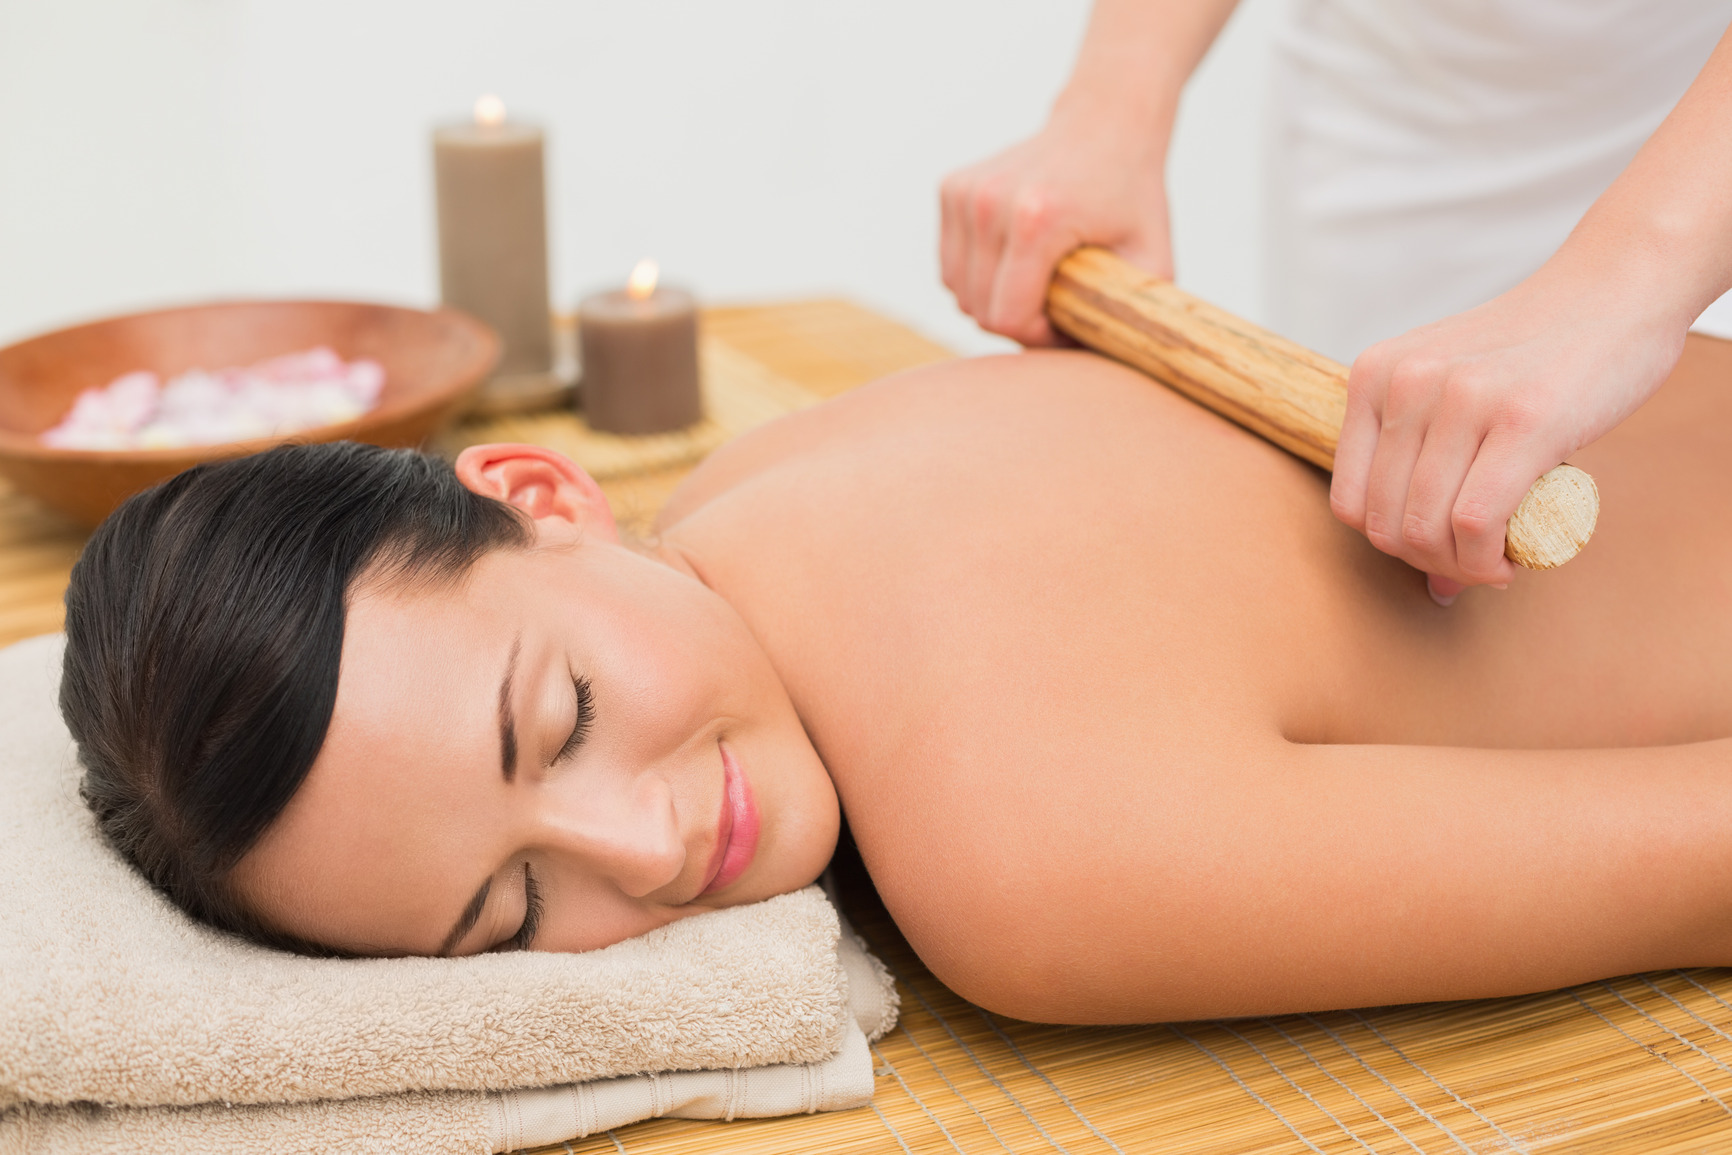 Beautiful brunette enjoying a bamboo roller massage in the health spa